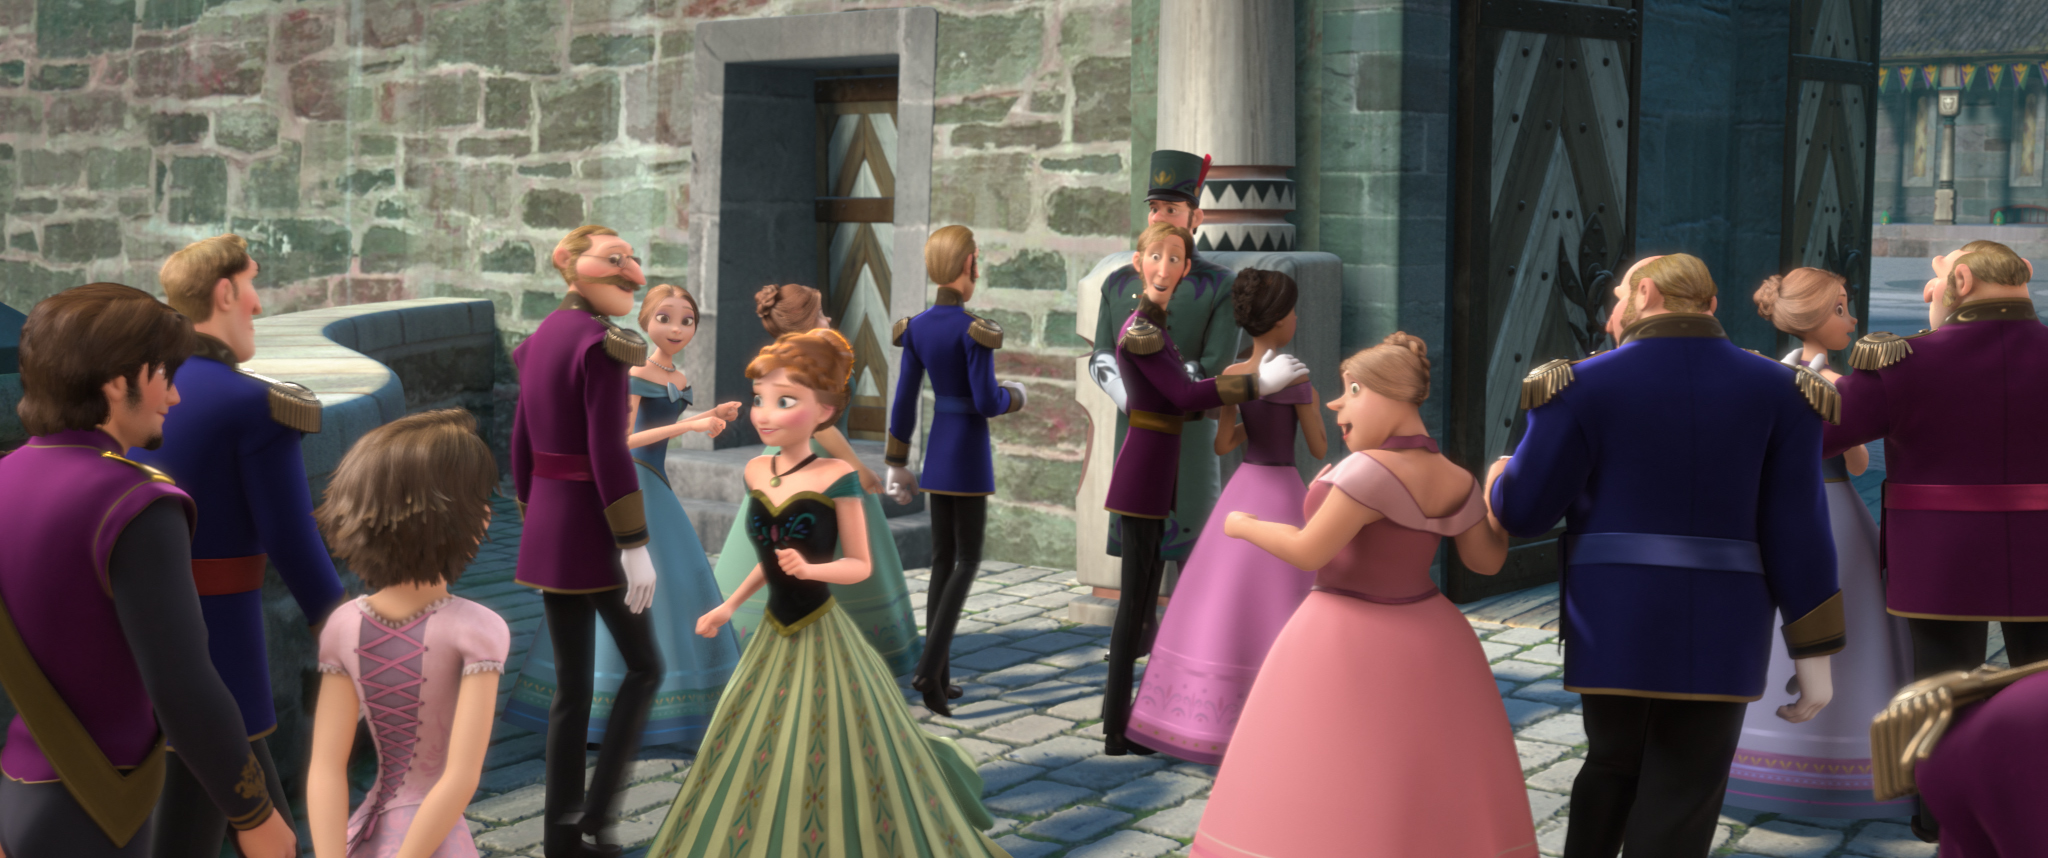 Rapunzel and Flynn Rider Easter egg in Disney's Frozen and more